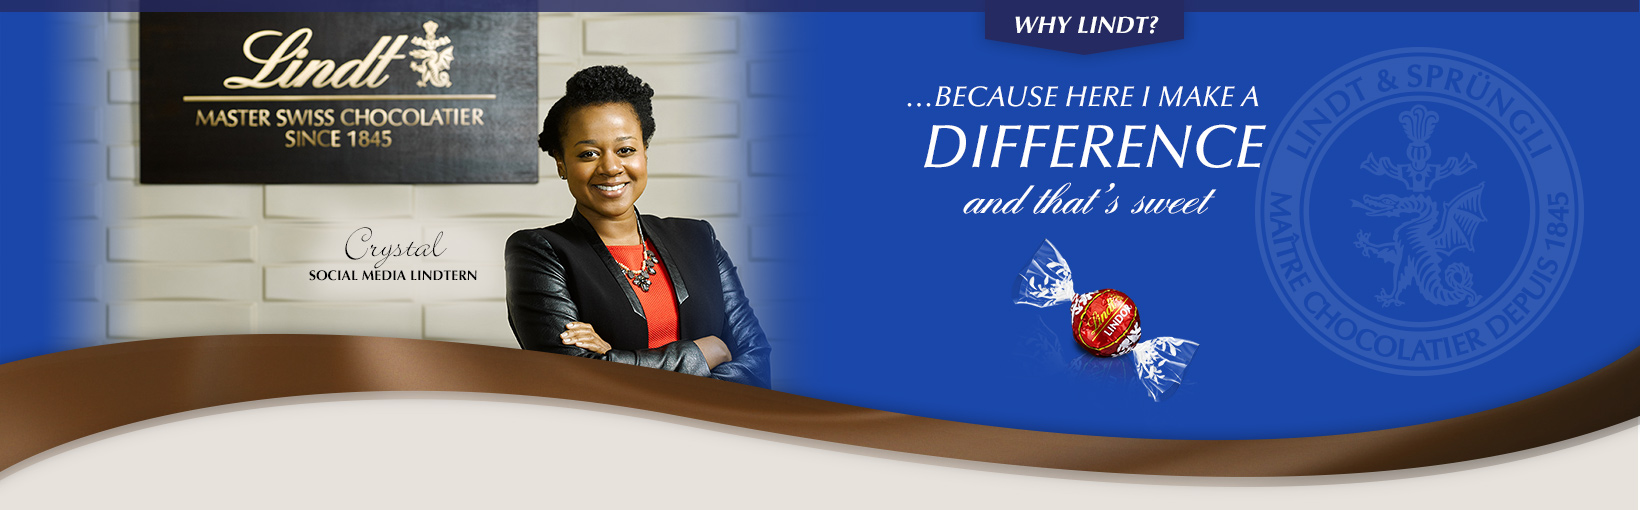 Why Lindt? …Because here I make a difference and that's sweet. Crystal, Social Media Lindtern